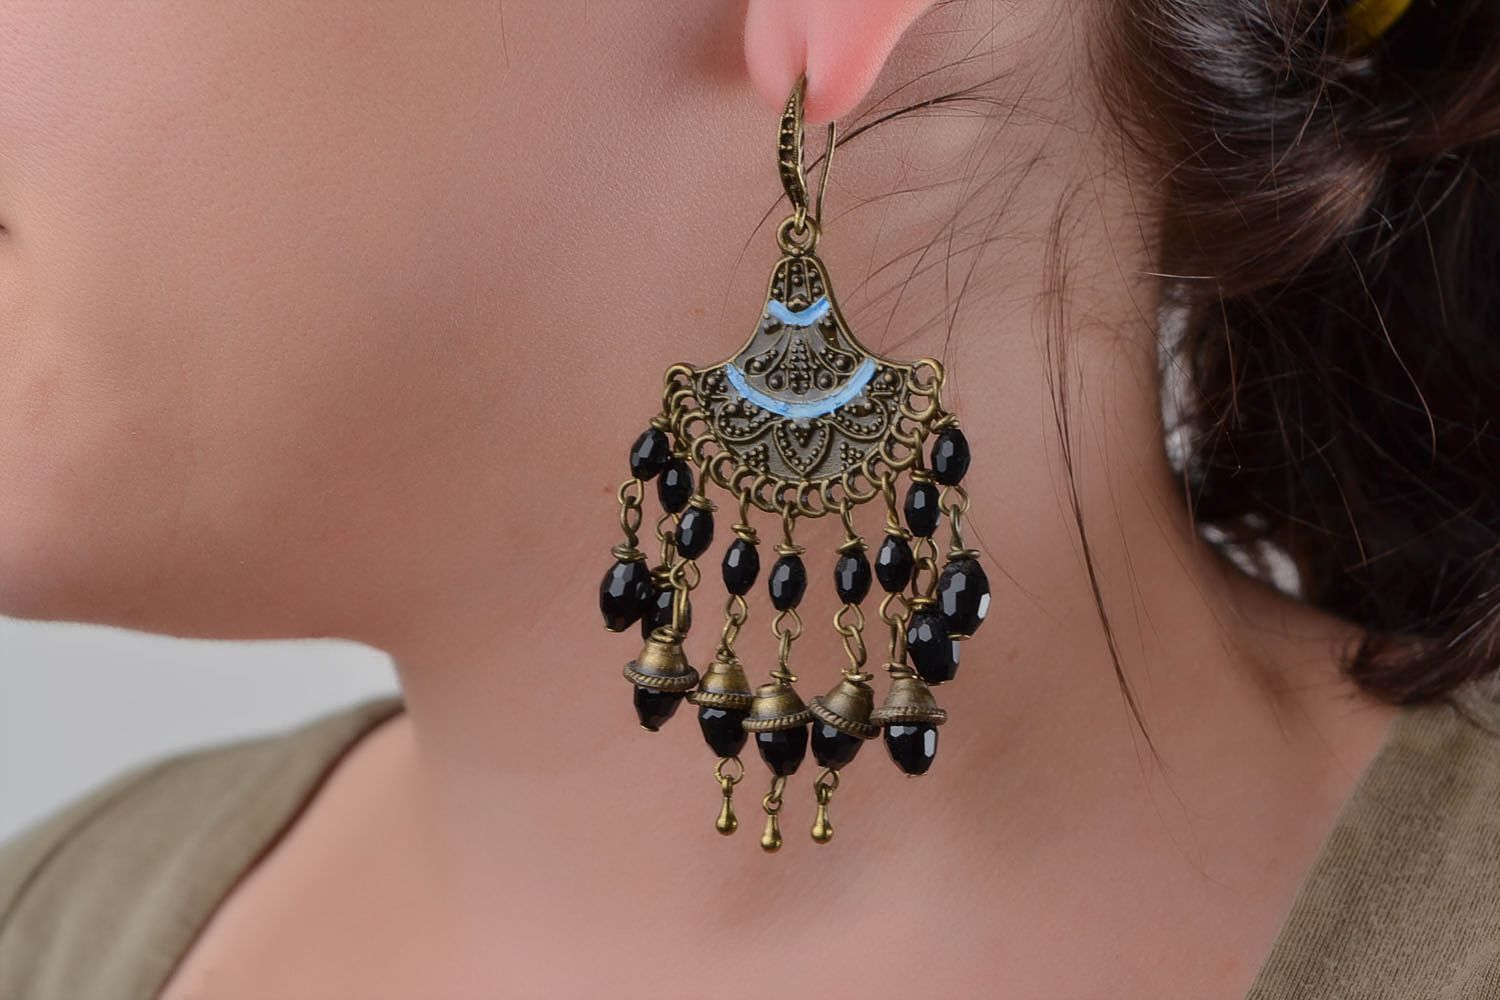 Handmade massive earrings accessory in Eastern style beautiful earrings photo 1